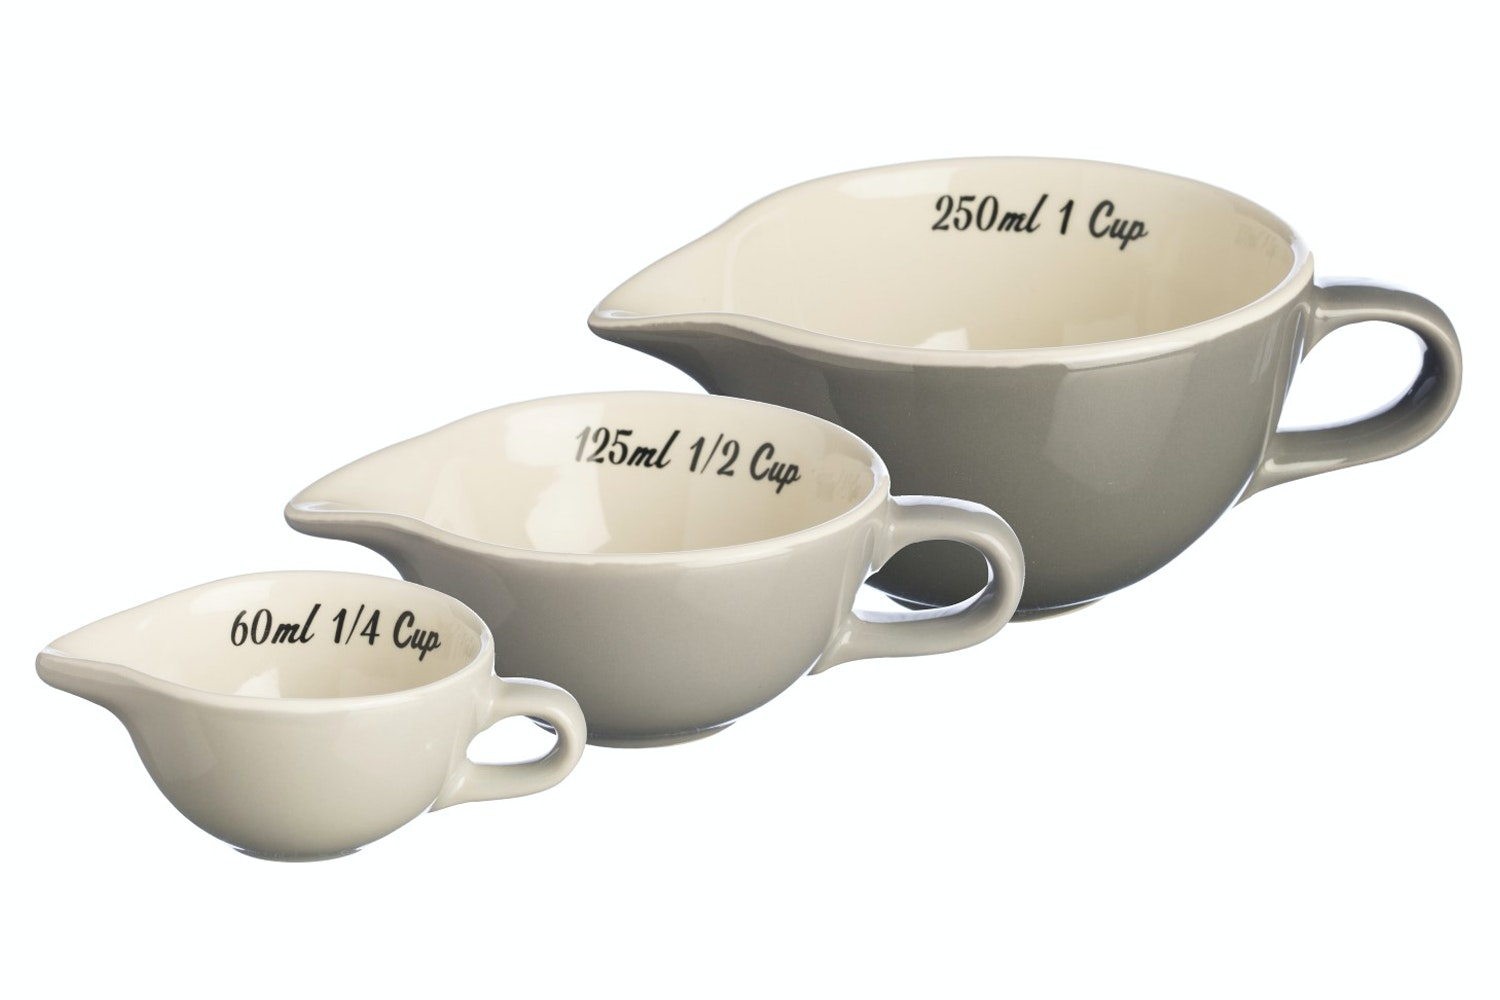 Mason Cash Baker Lane Measuring Cups|Set of 3